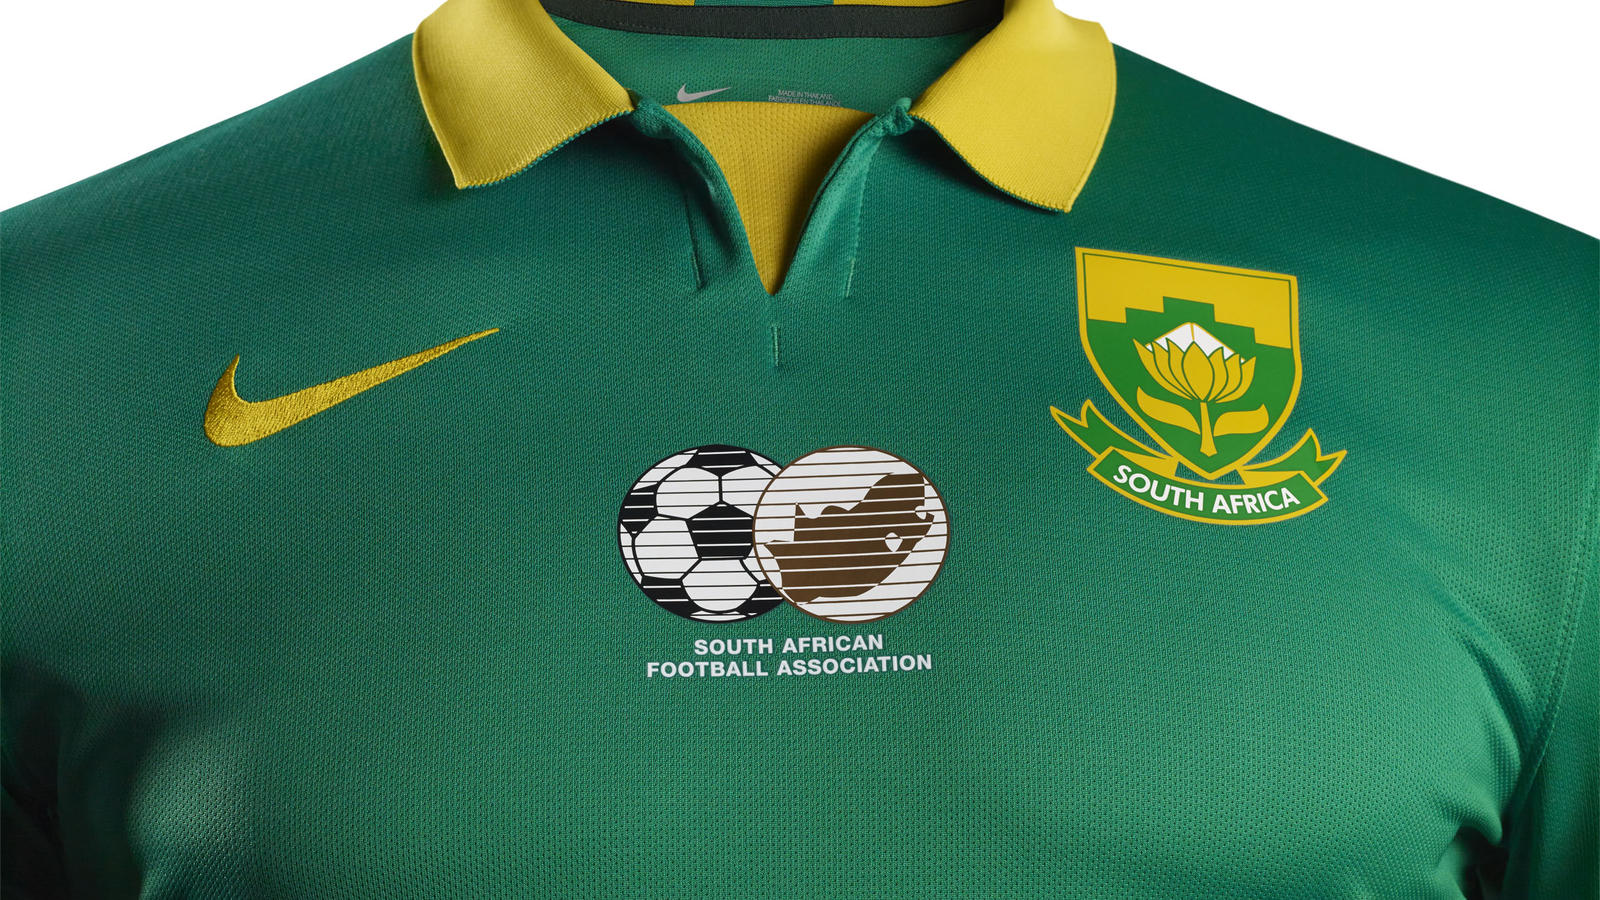 South Africa and Nike Unveil National Football Team Kits - Nike News